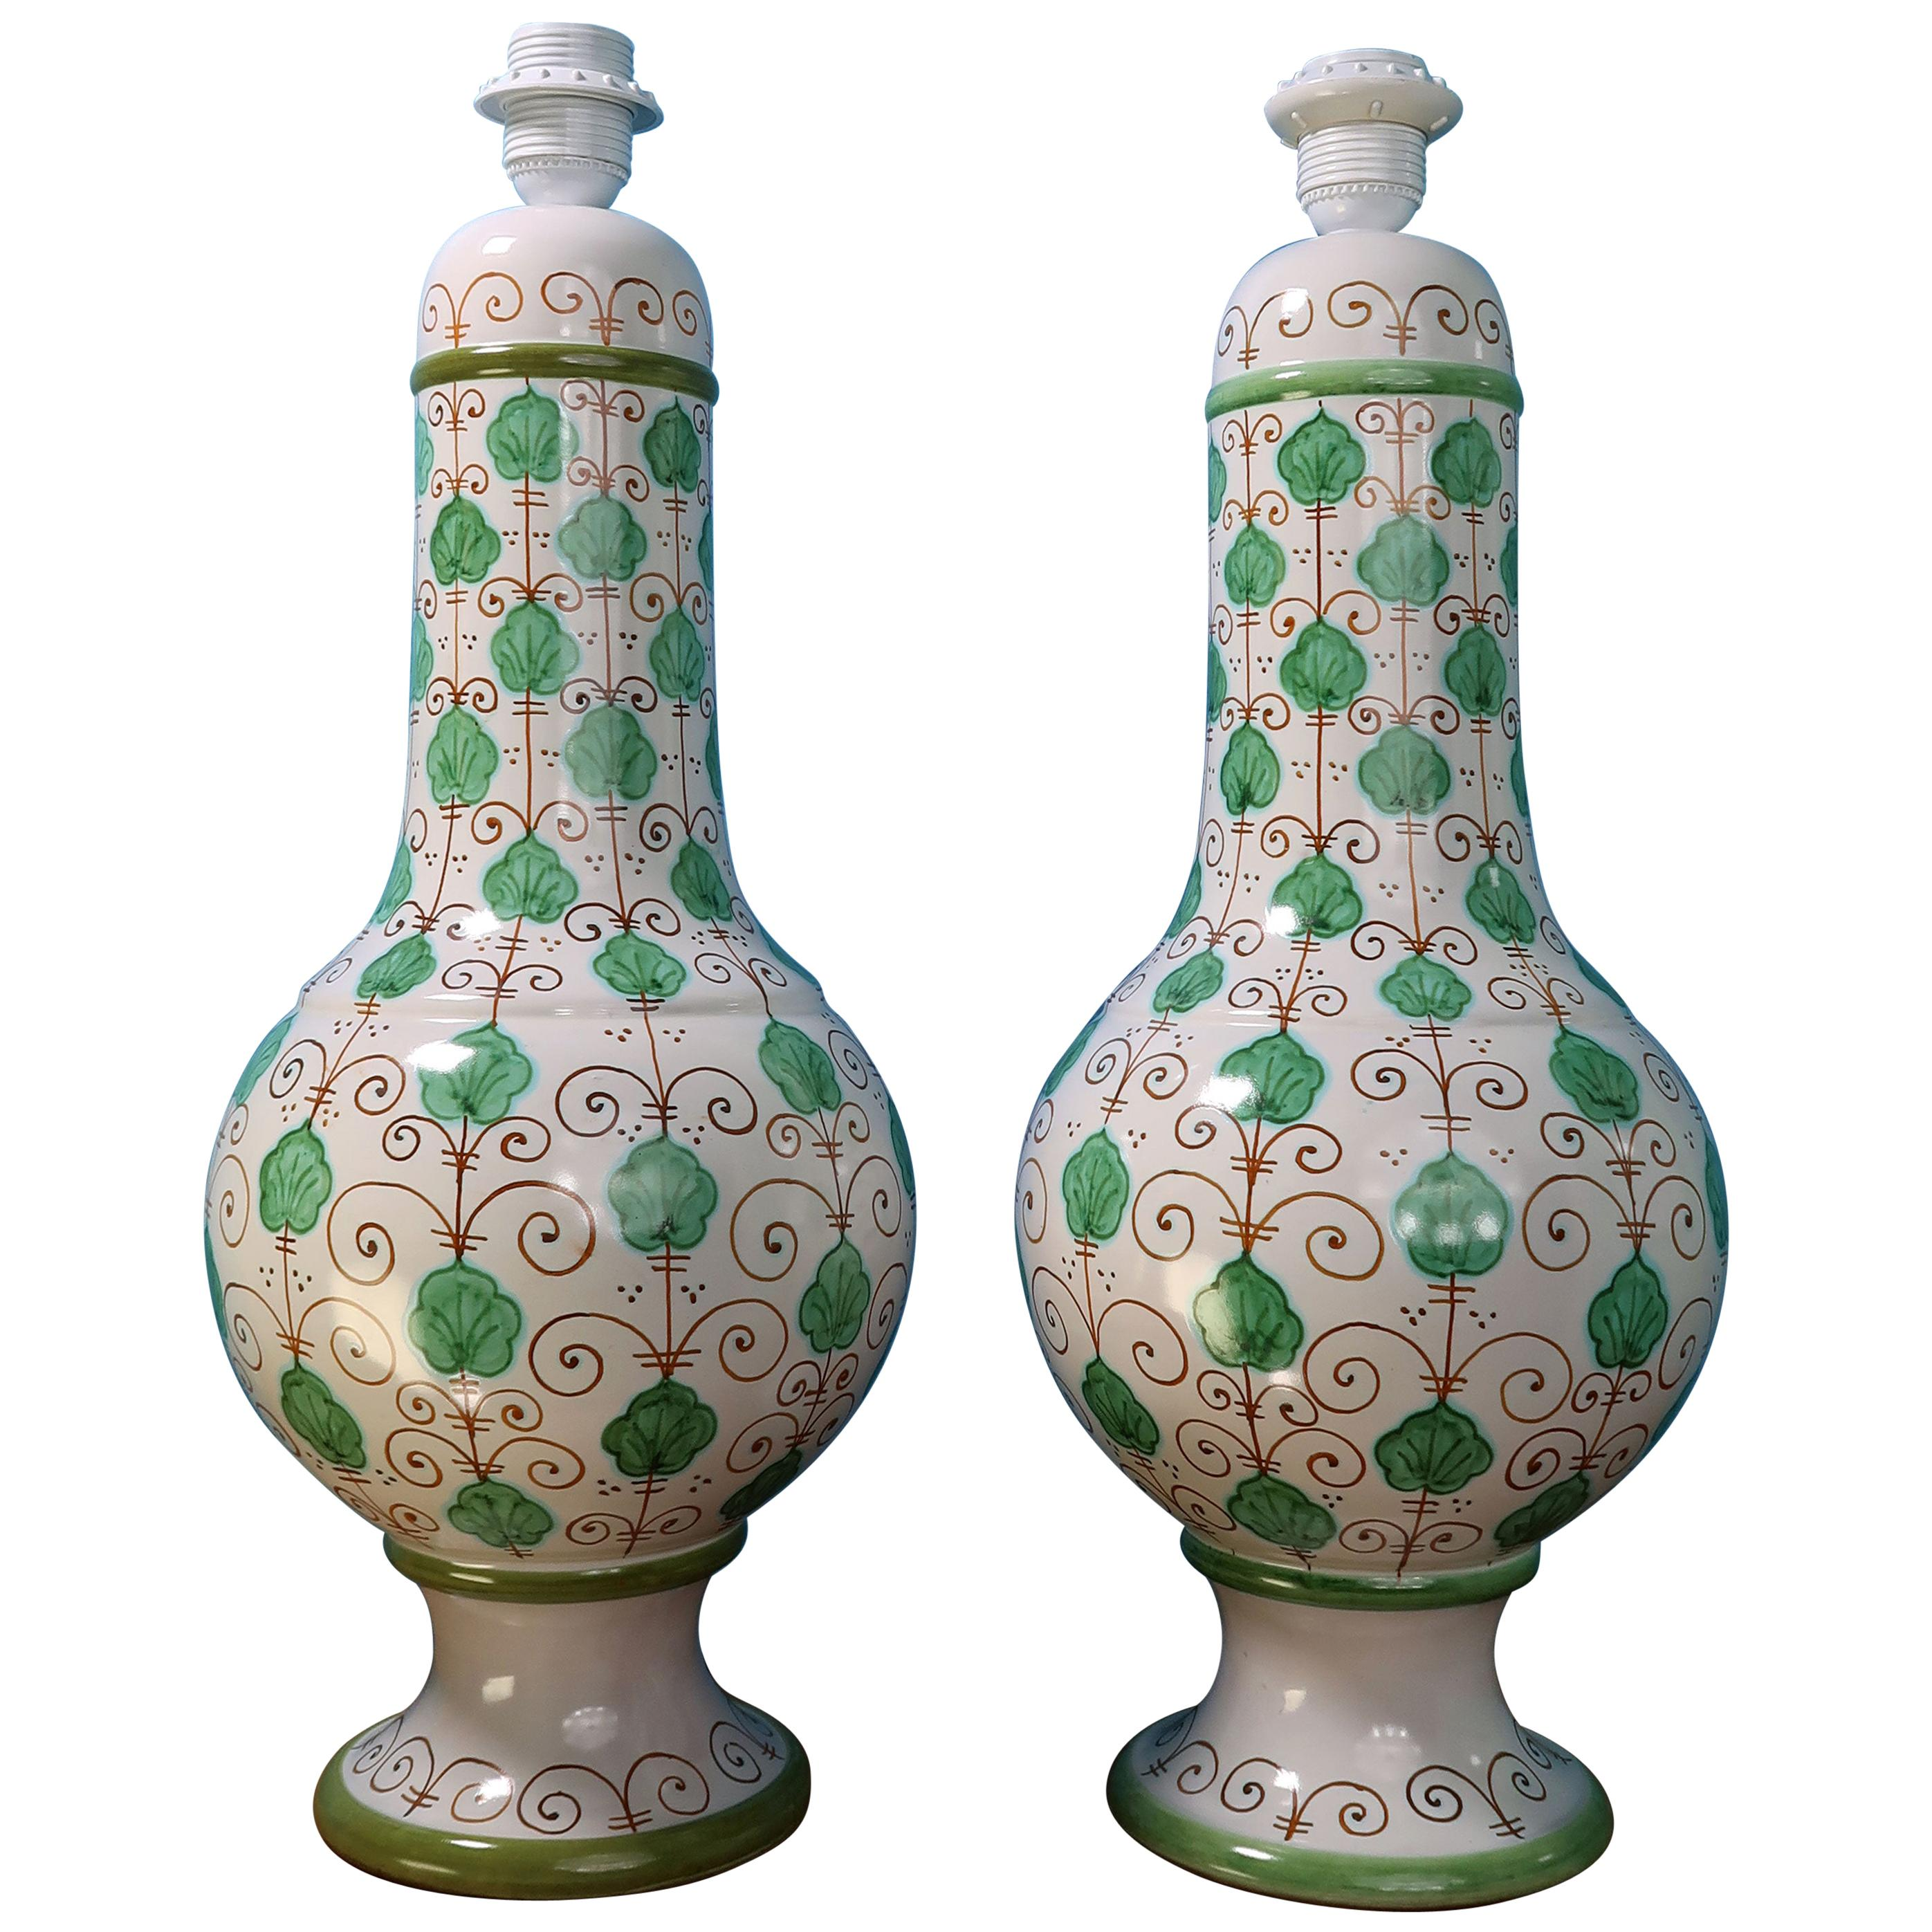 Pair of Tall Italian Vintage Hand Painted White Green Table Lamps, 1960s